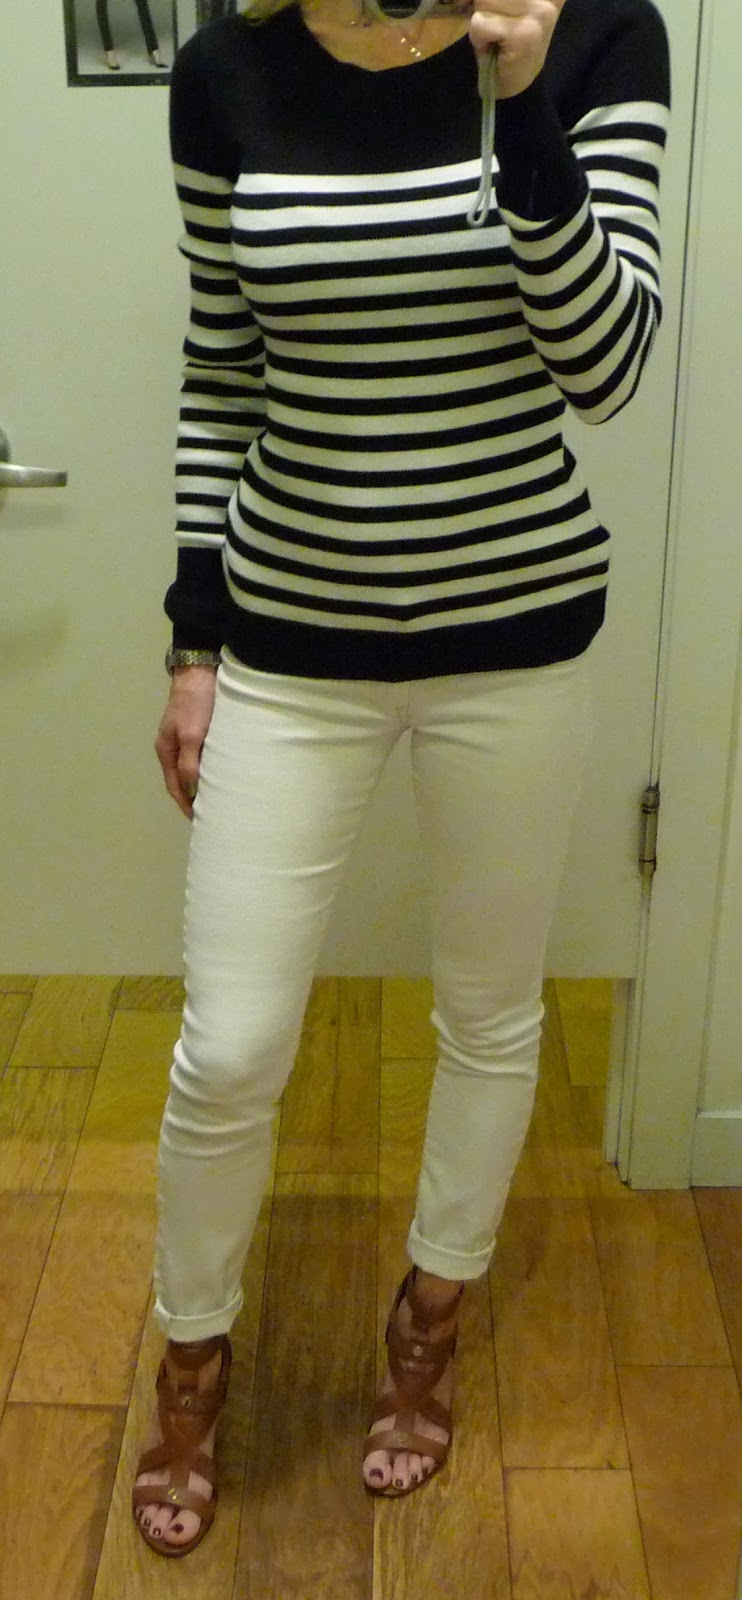 Express striped sweater, black and white